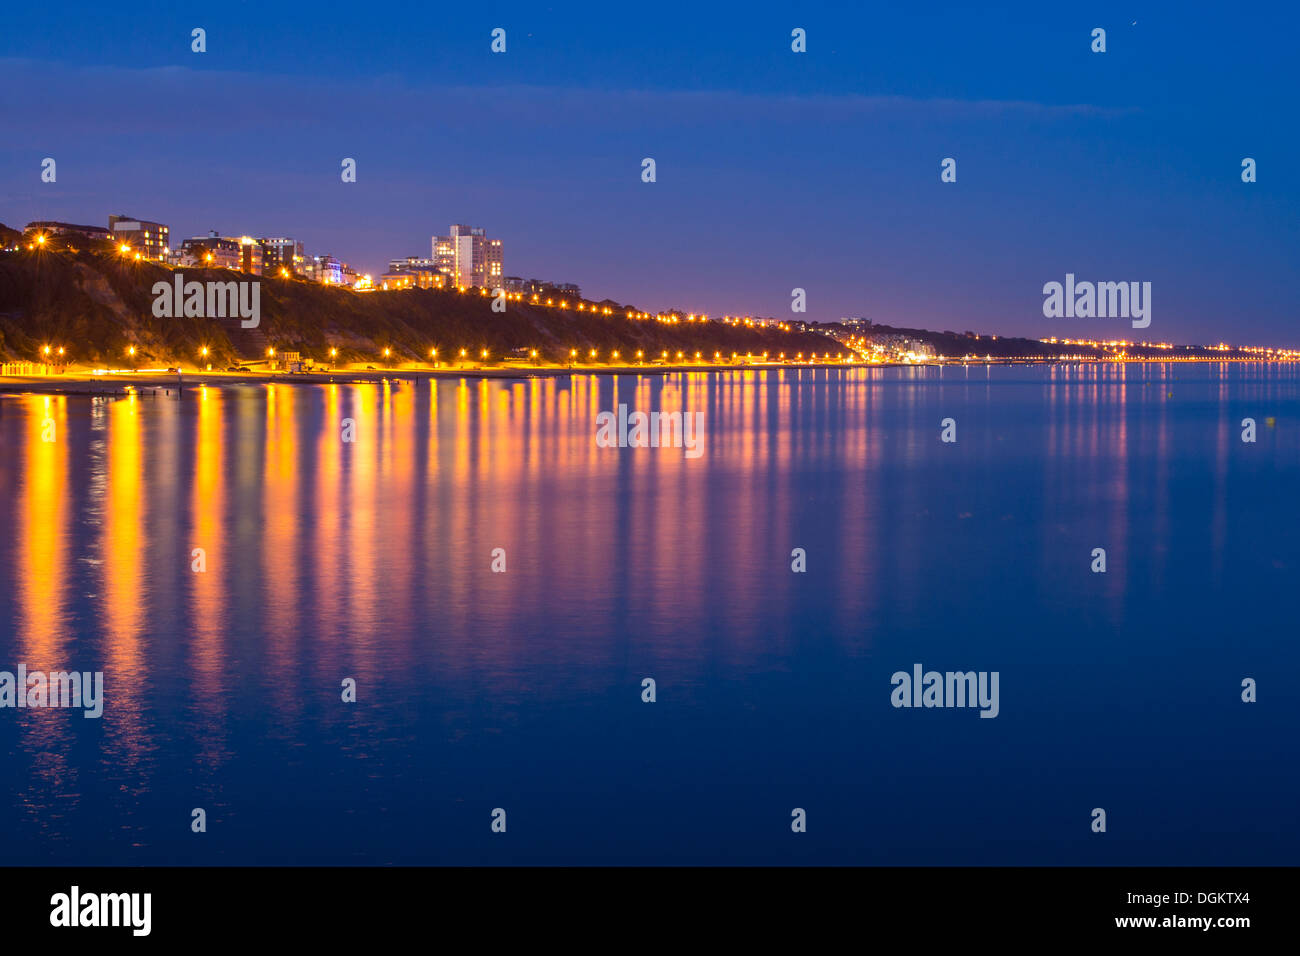 A view of Bournemouth coast line after sunset. - Stock Image